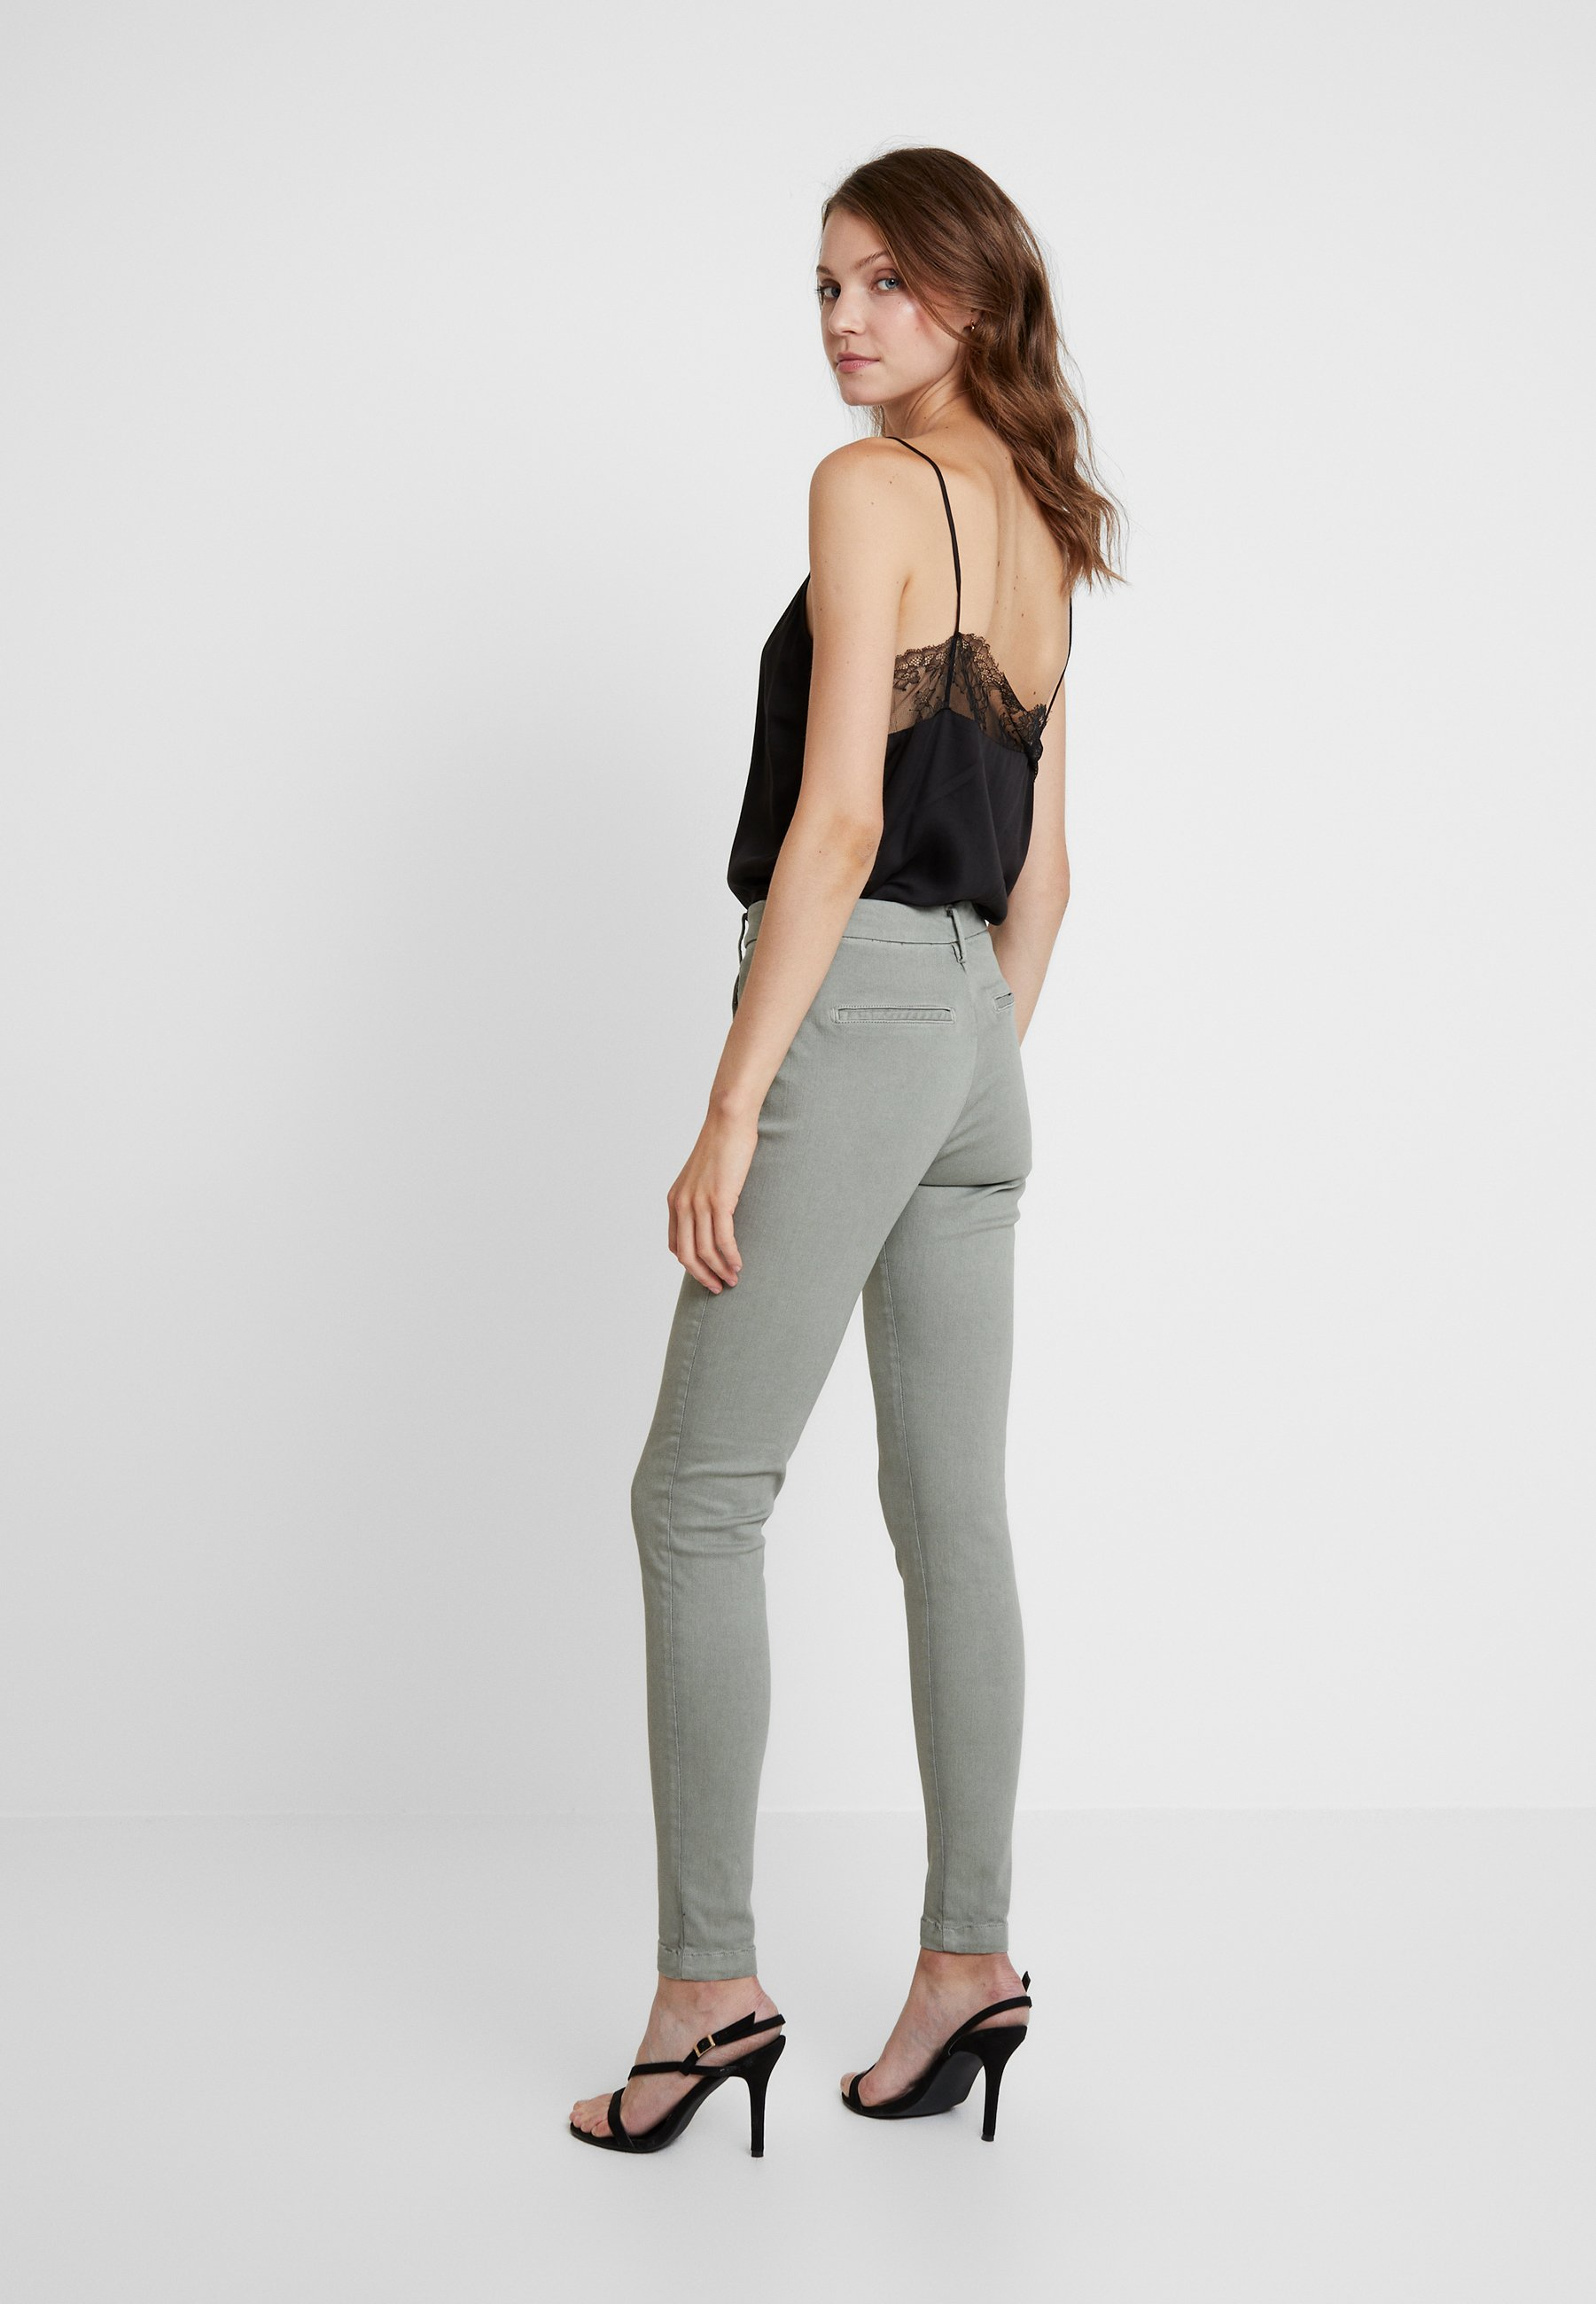 SurvêtementLight Replay Green Replay De De Pantalon Pantalon SurvêtementLight OXZuTPki